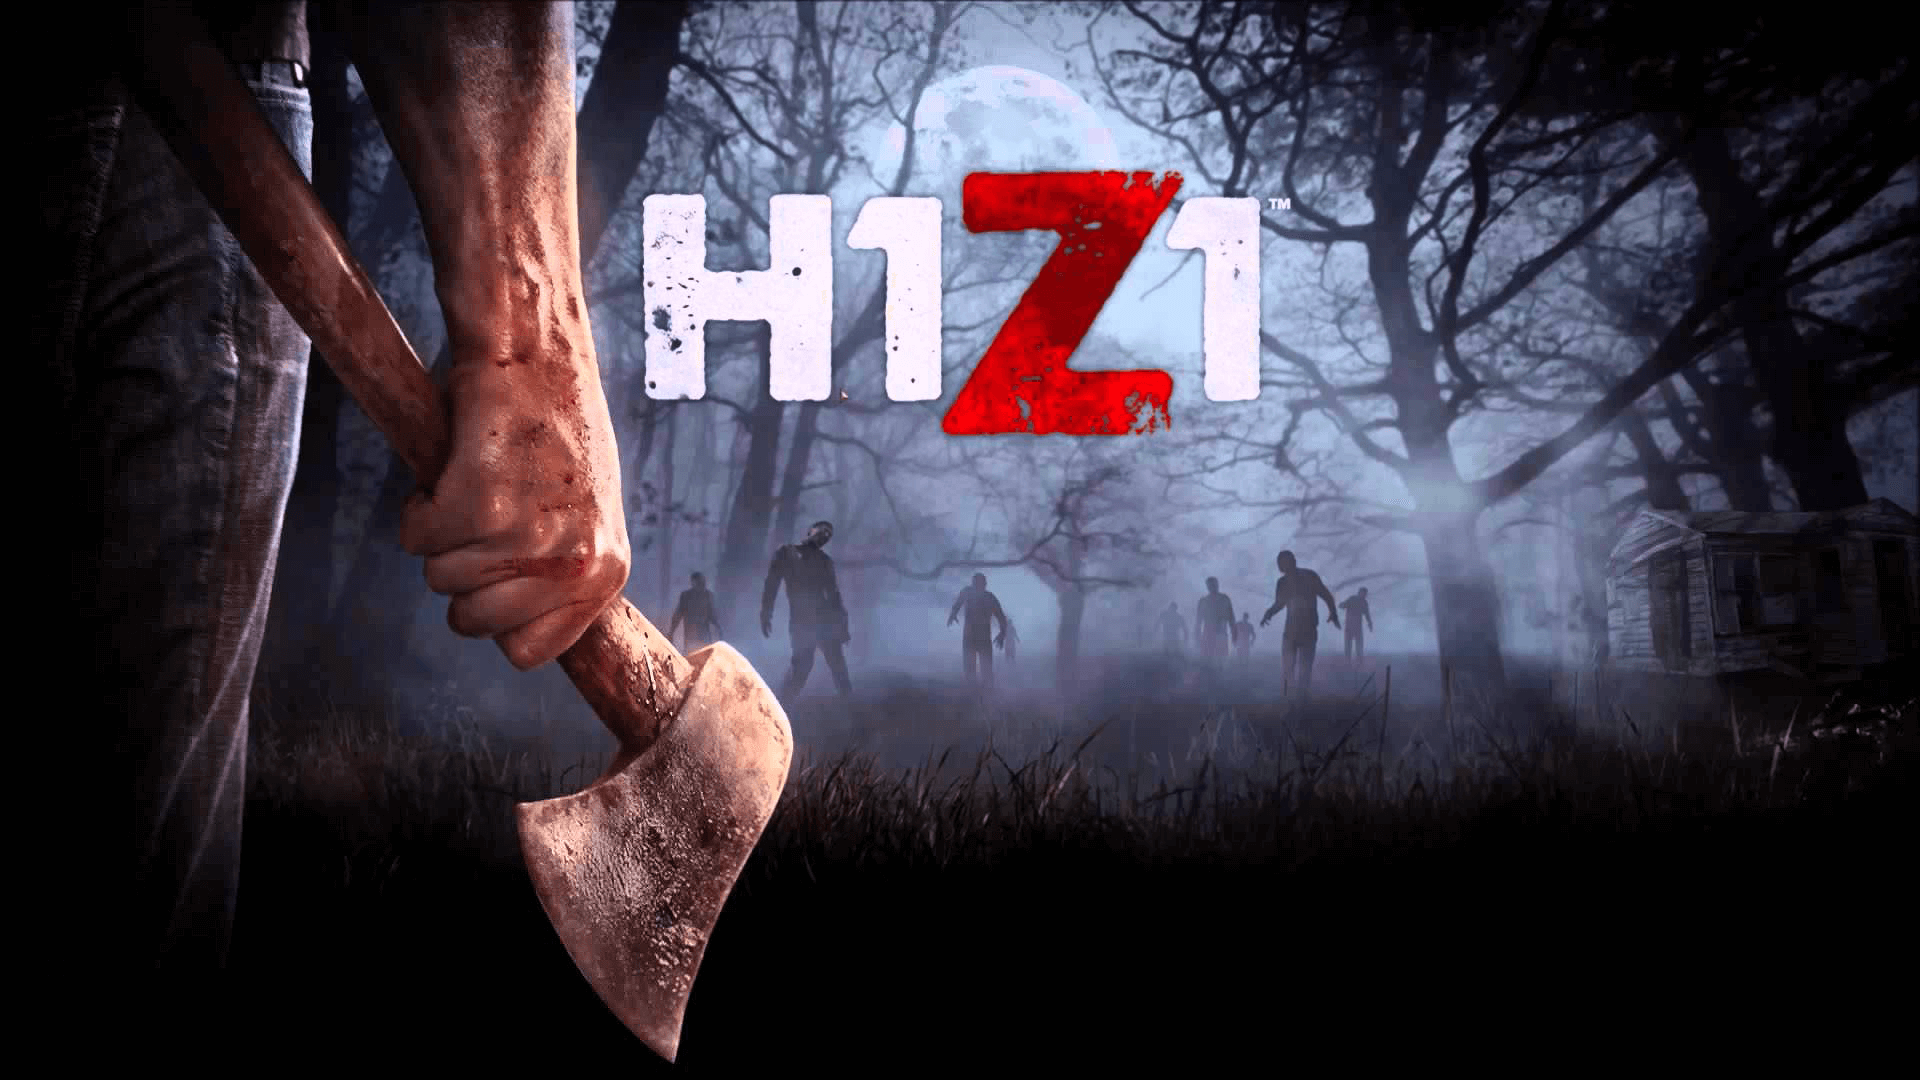 h1z1 zombie video game wallpaper 64156